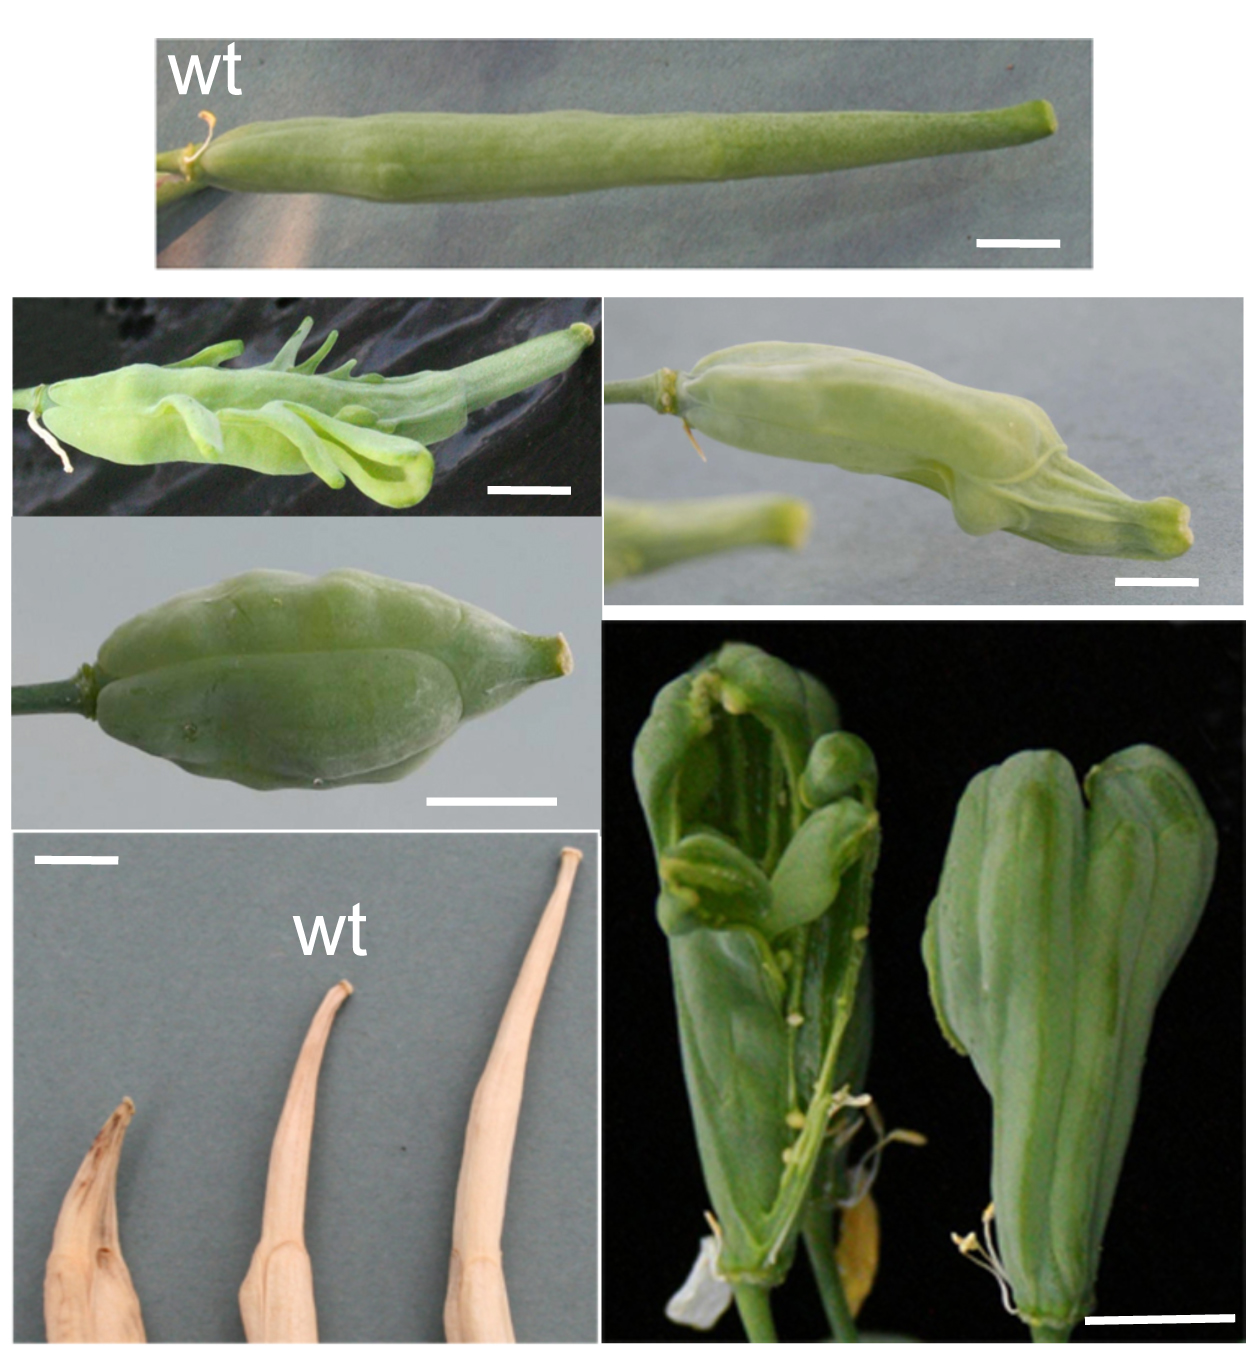 growth of brassica rapa essay example Initial growth new growth of the plant is visible after a period of no growth one or more fruits are visible on the plant for brassica rapa.